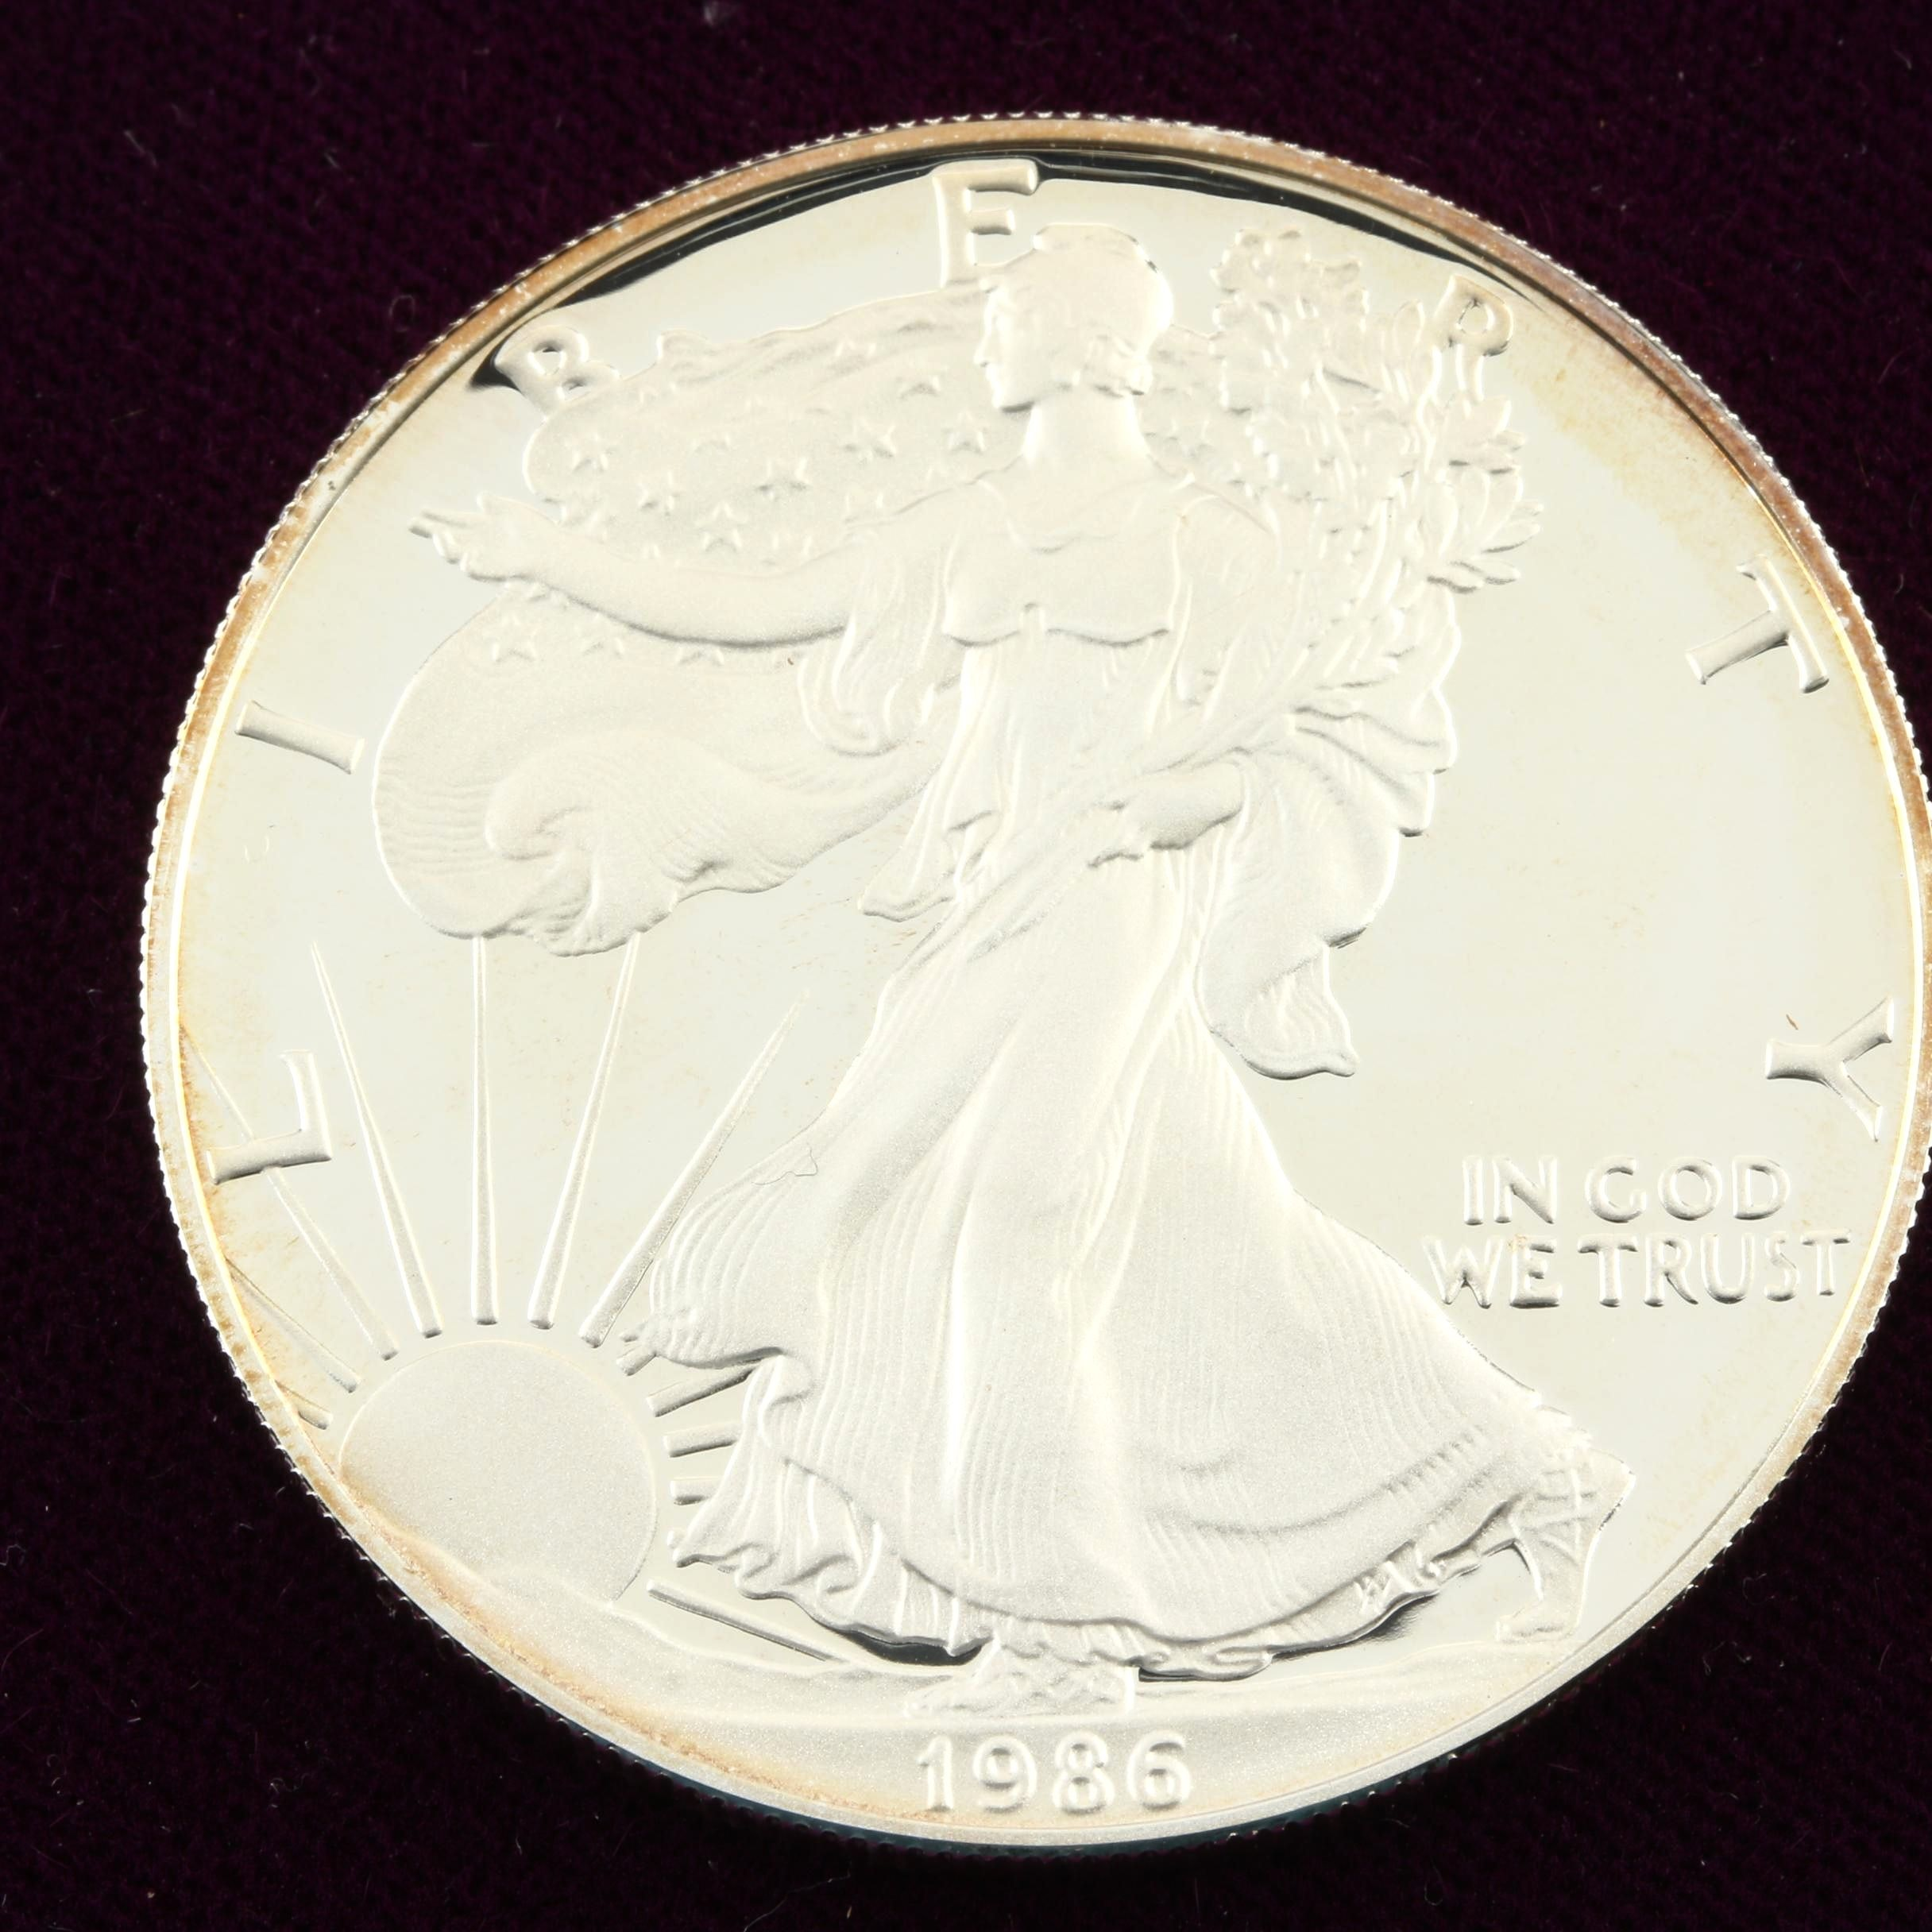 1986-S Walking Liberty Silver Eagle Proof Bullion Coin